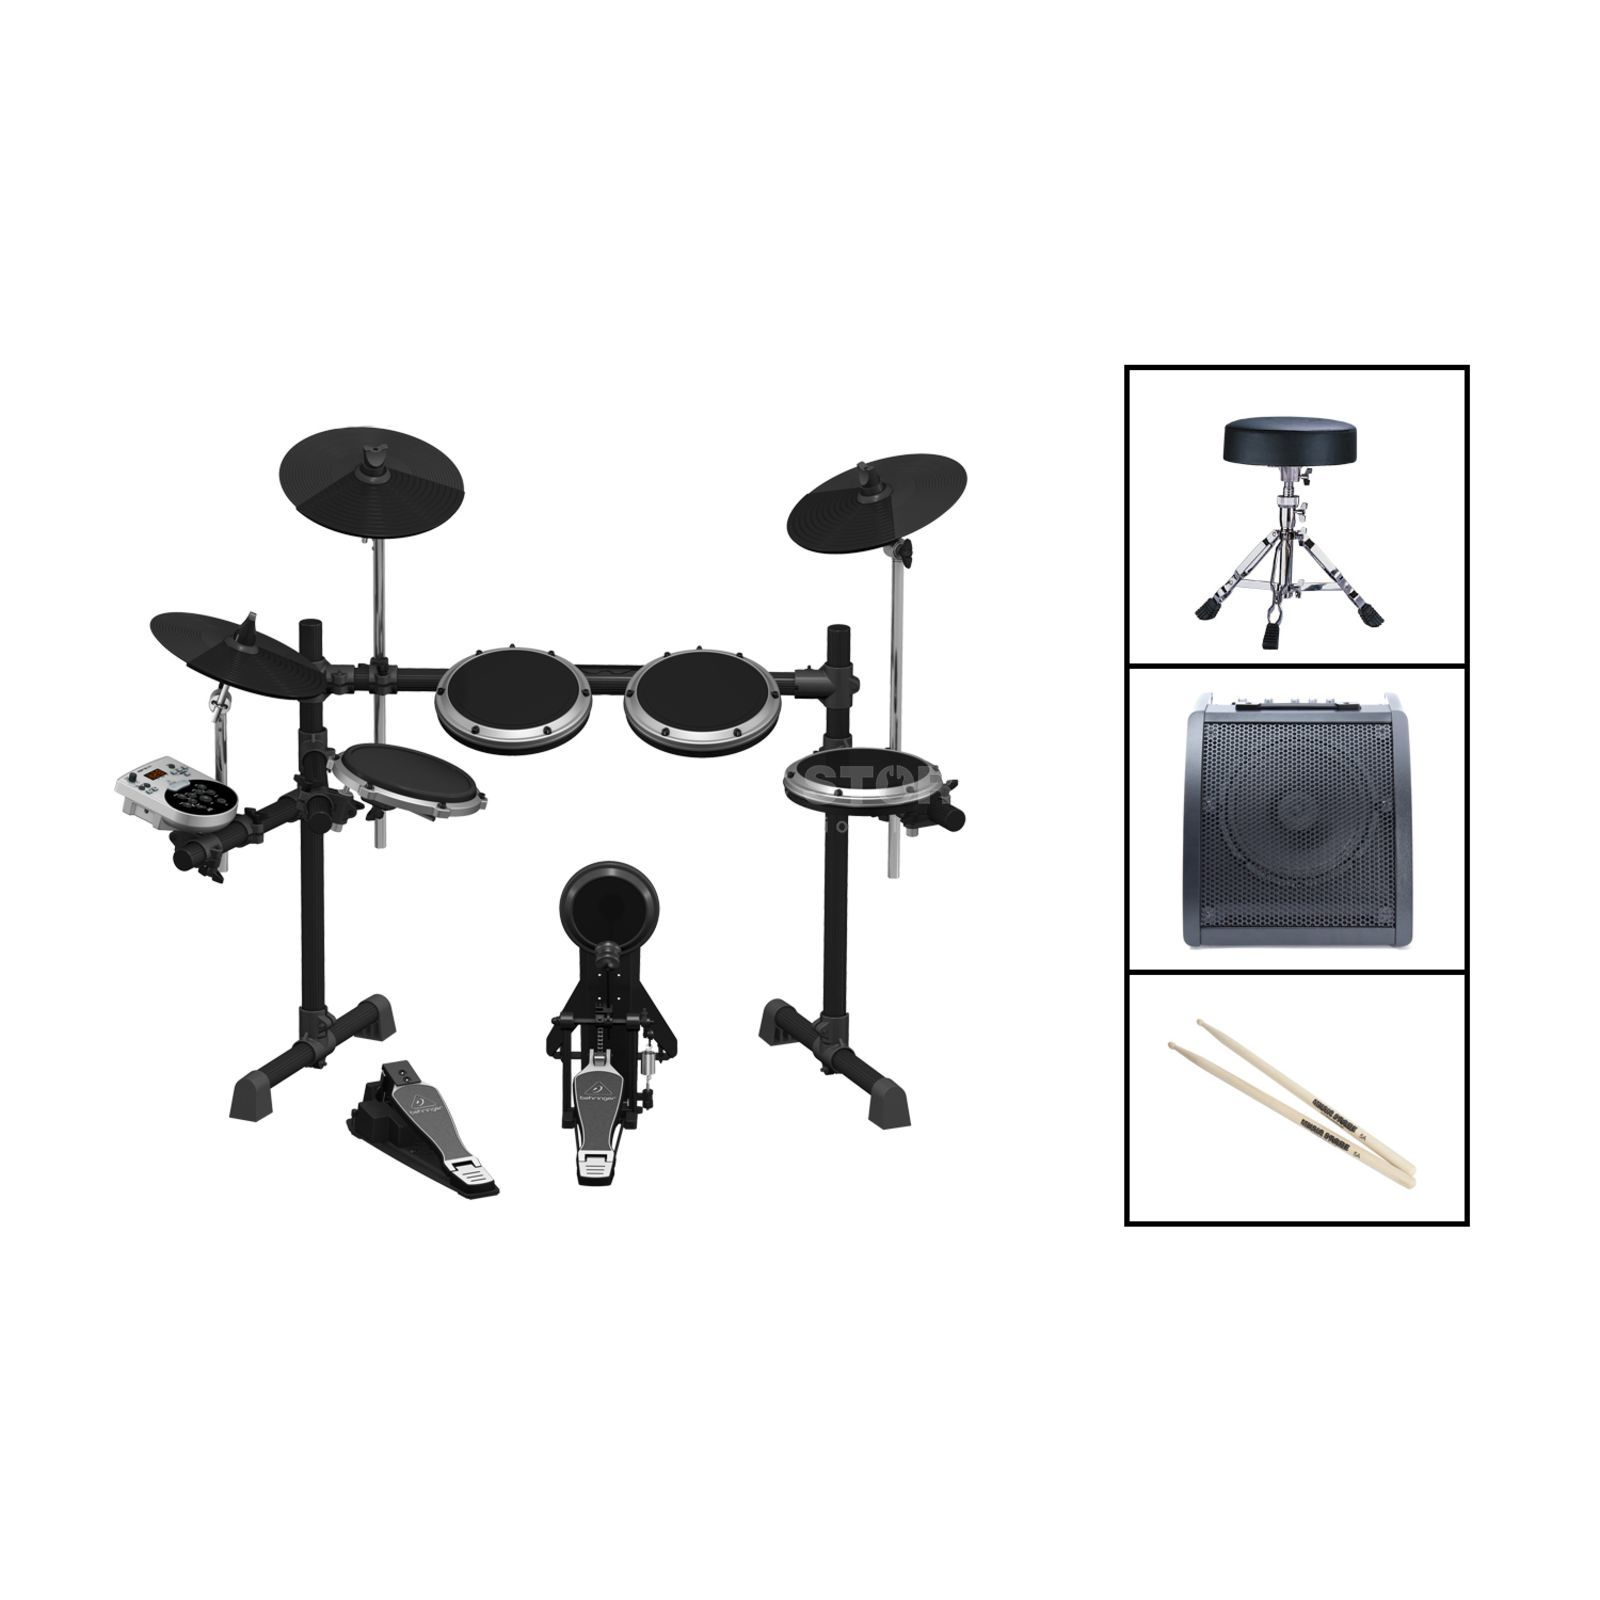 SET BEHRINGER XD8USB Bundle II, inkl. Monitor, Hocker & Stix Produktbild